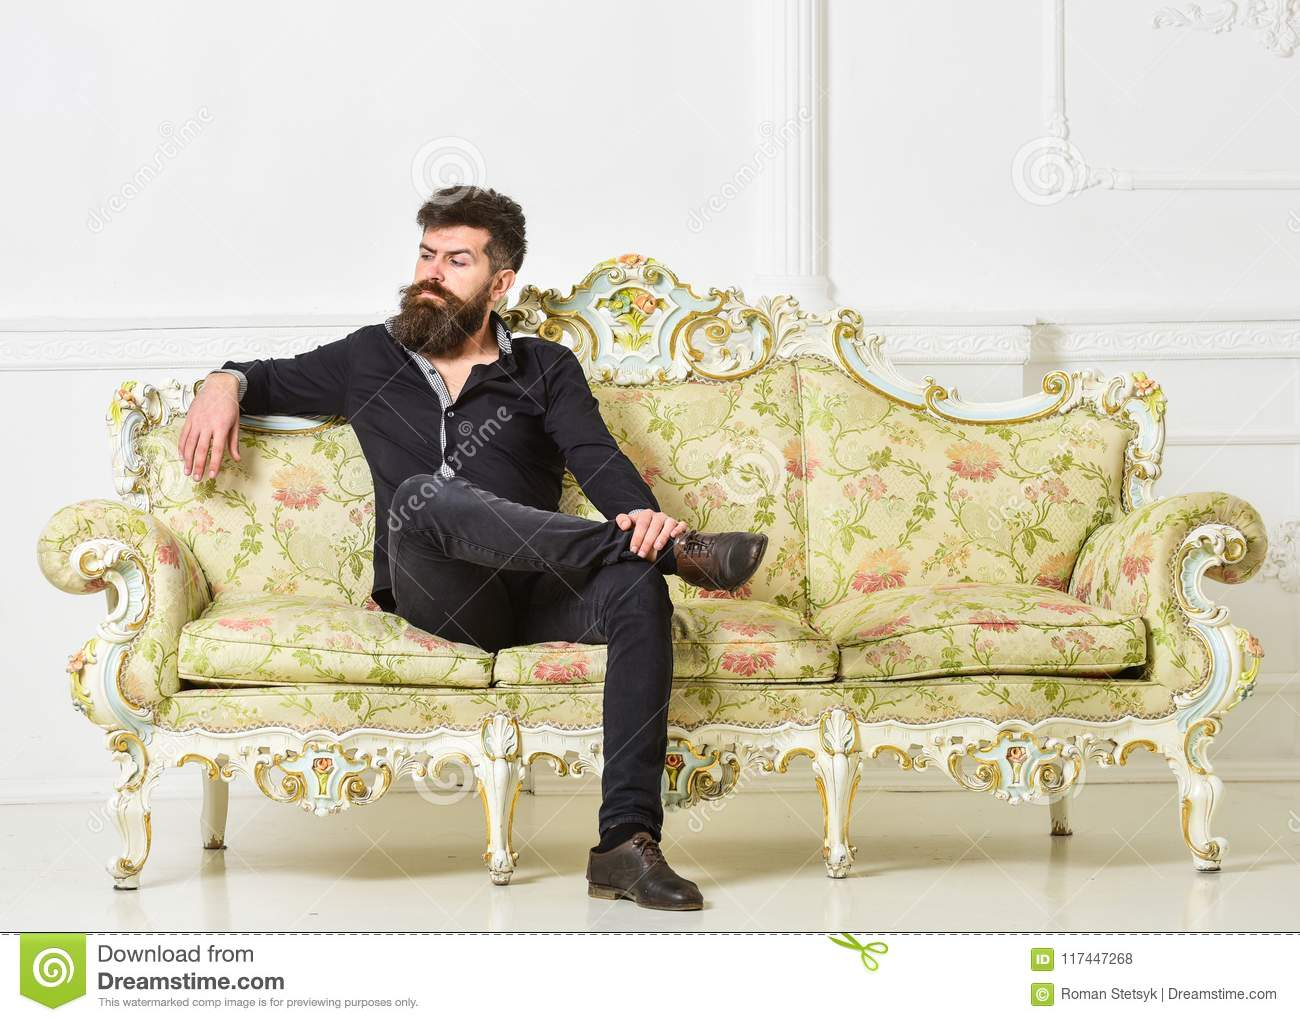 Hipster on arrogant face sits alone. Man with beard and mustache spends leisure in luxury living room. Rich and lonely